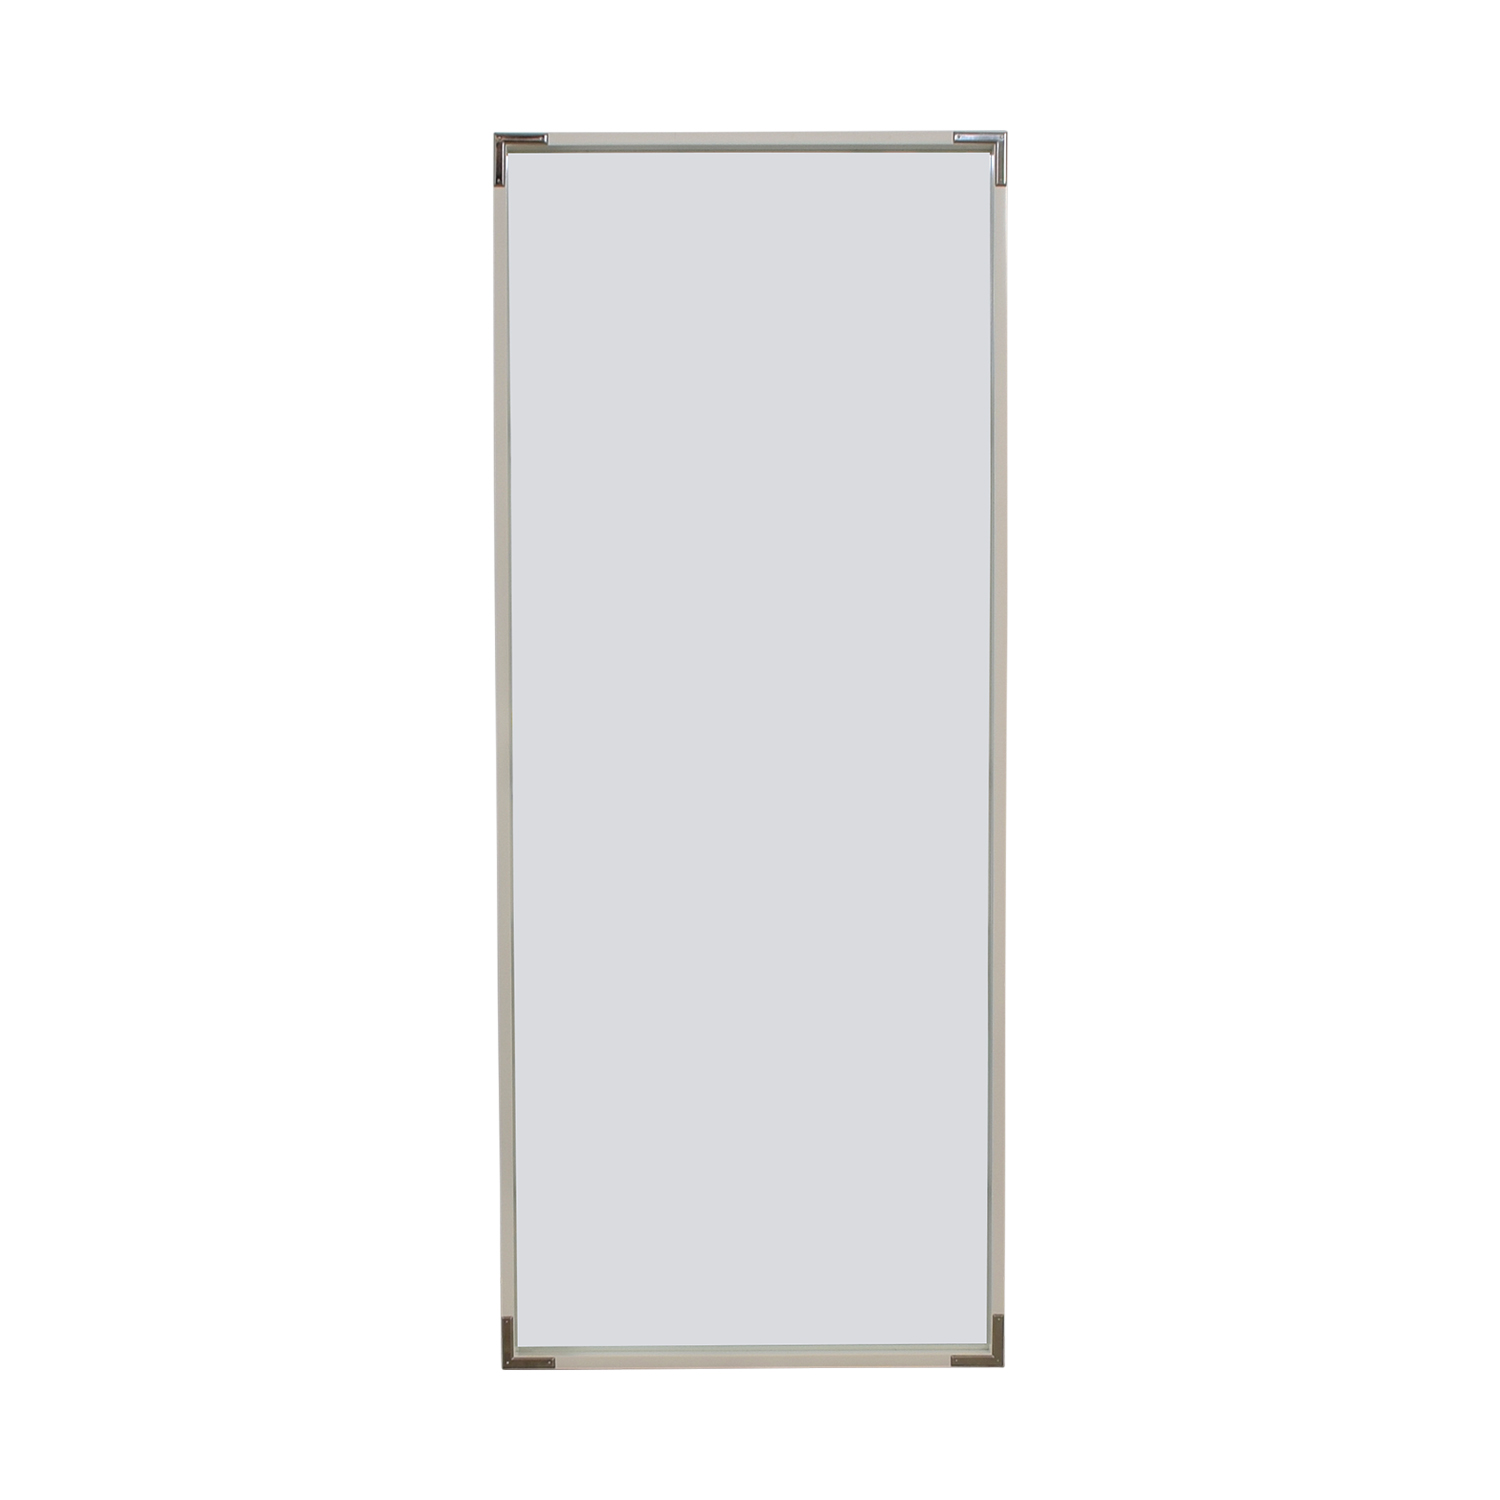 West Elm West Elm White Framed Floor Mirror used